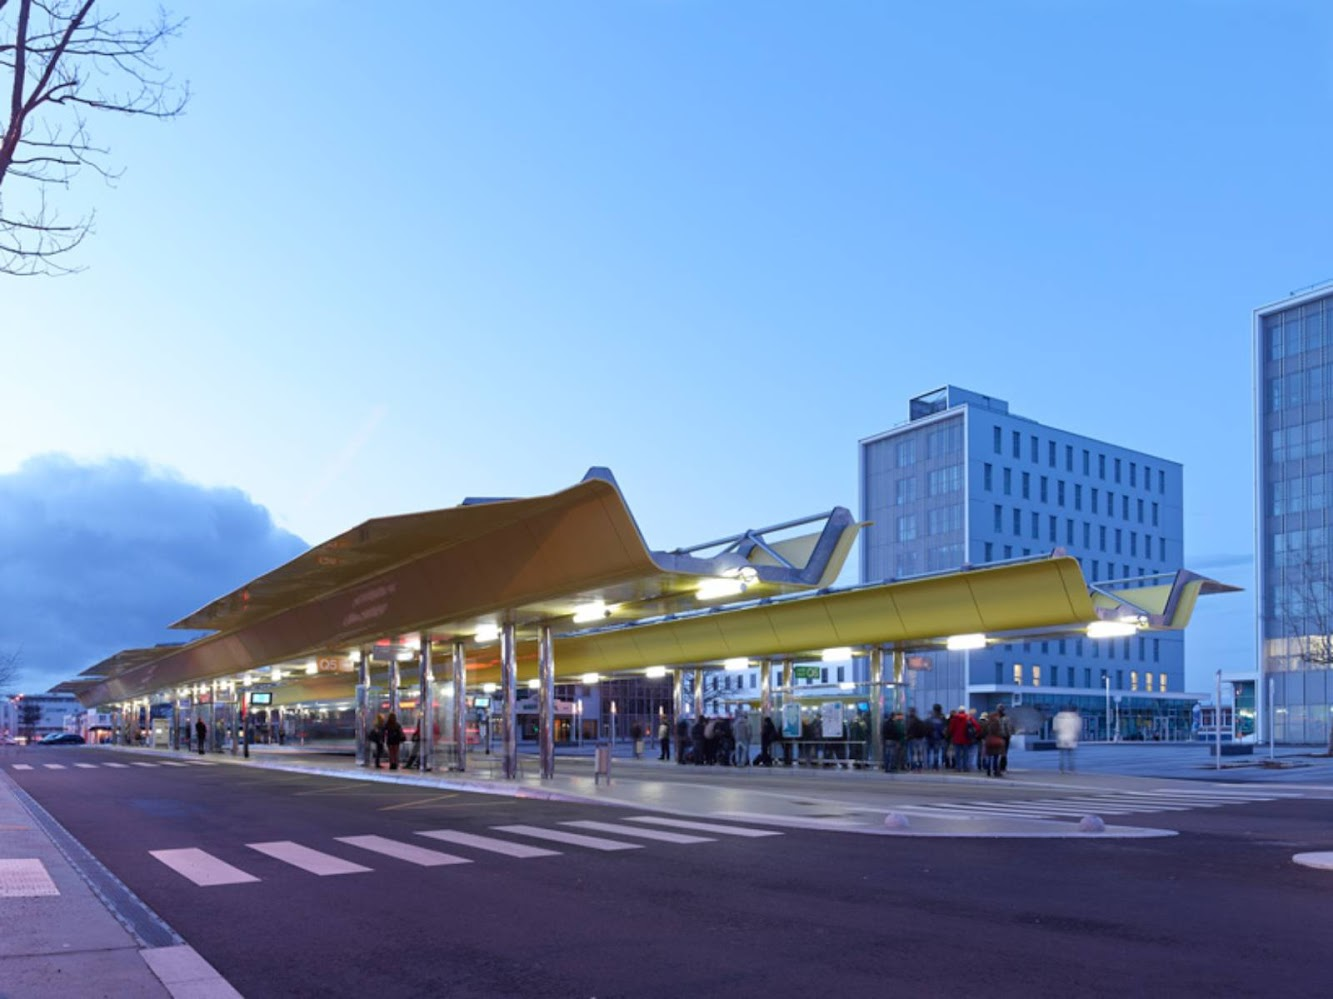 Saint-Nazaire, Francia: Saint Nazaire Railway Station by Tetrarc Architects